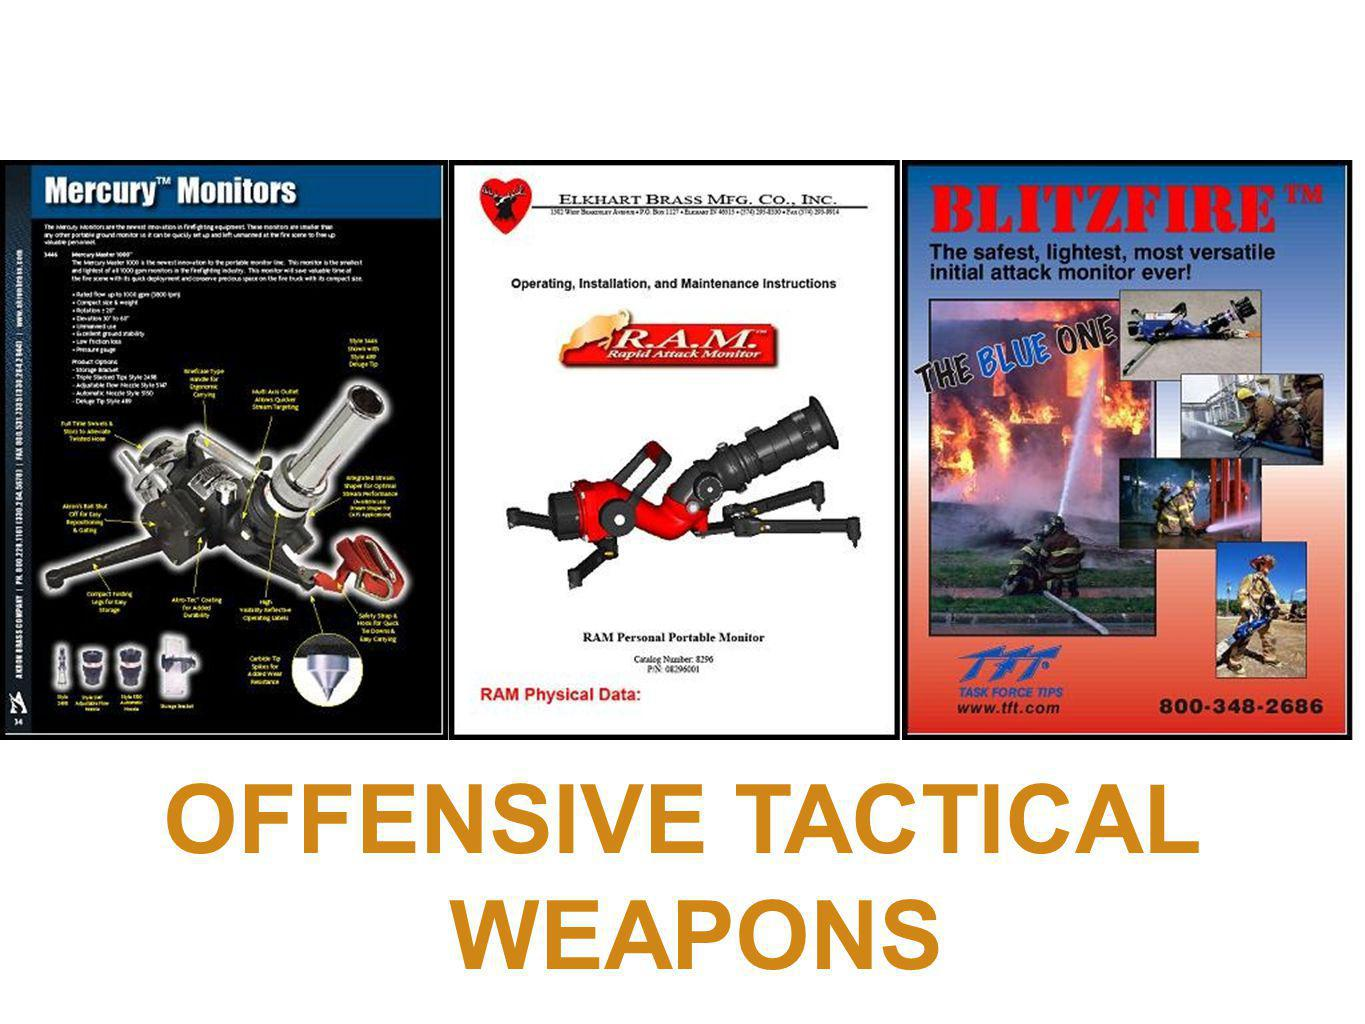 OFFENSIVE TACTICAL WEAPONS